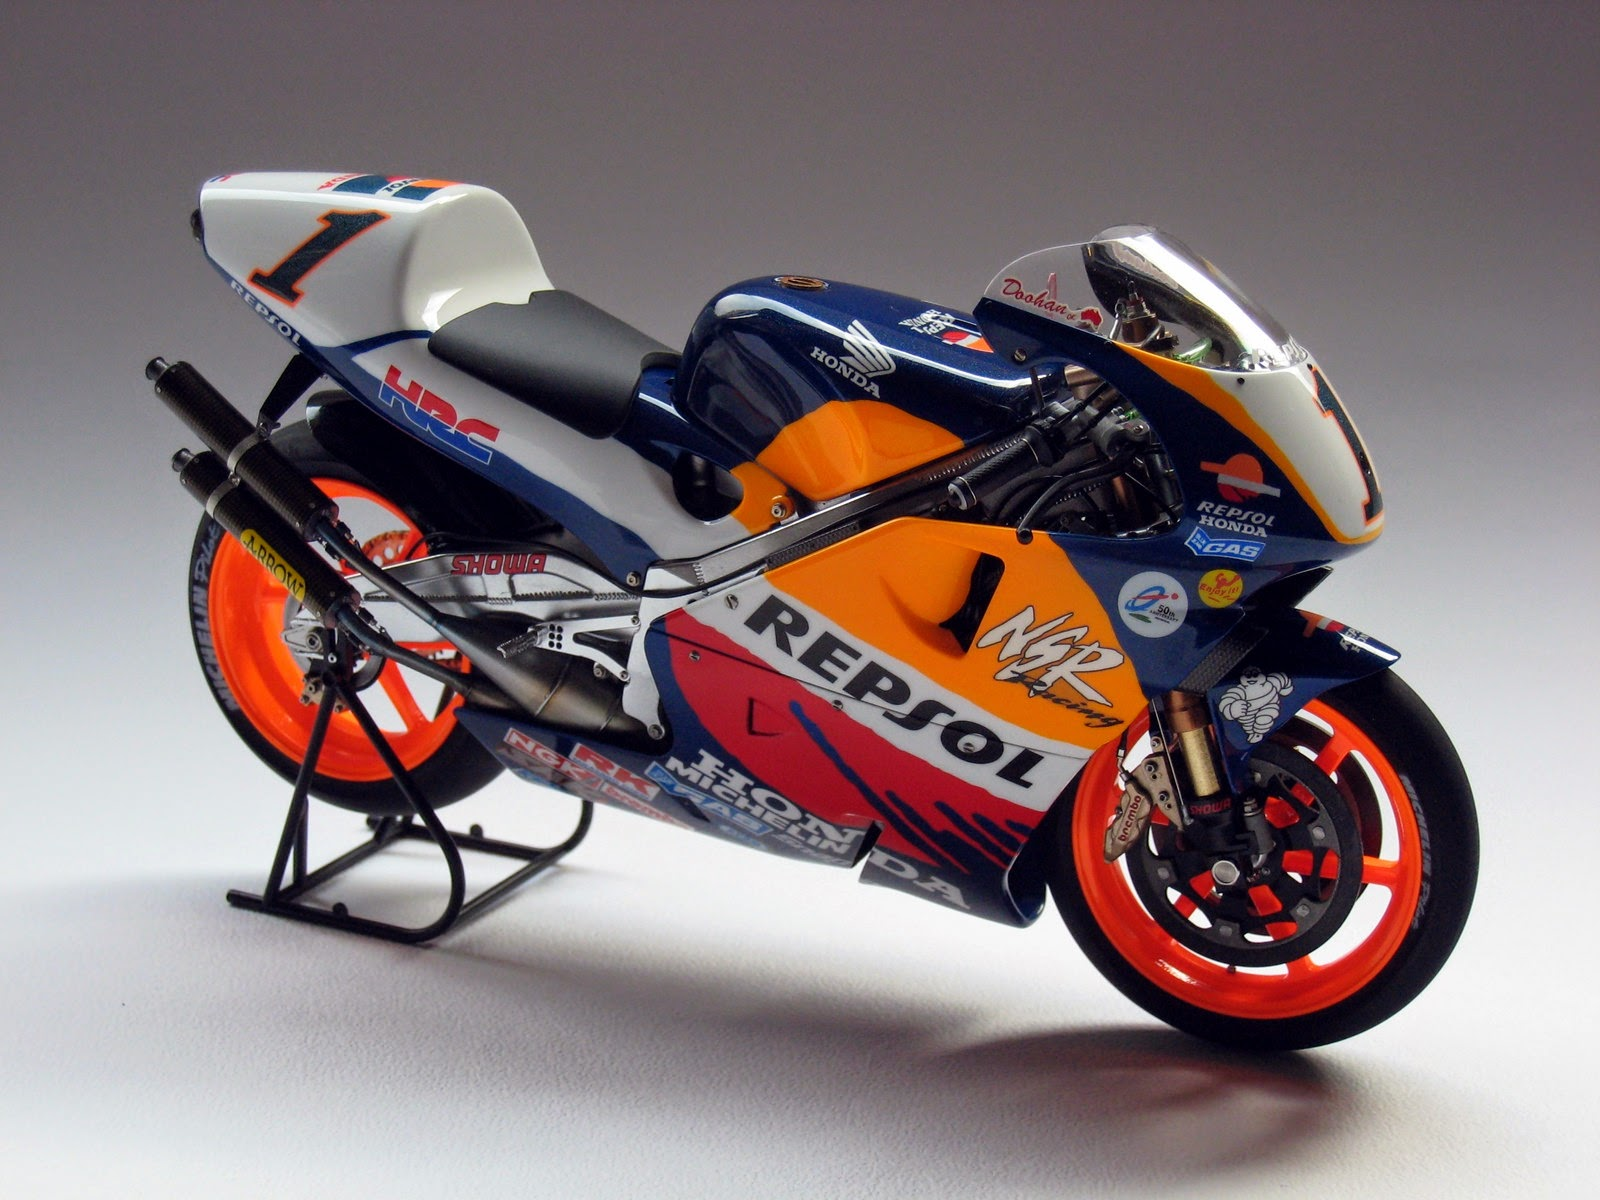 racing scale models honda nsr 500 m doohan 1998 by luyan wen. Black Bedroom Furniture Sets. Home Design Ideas